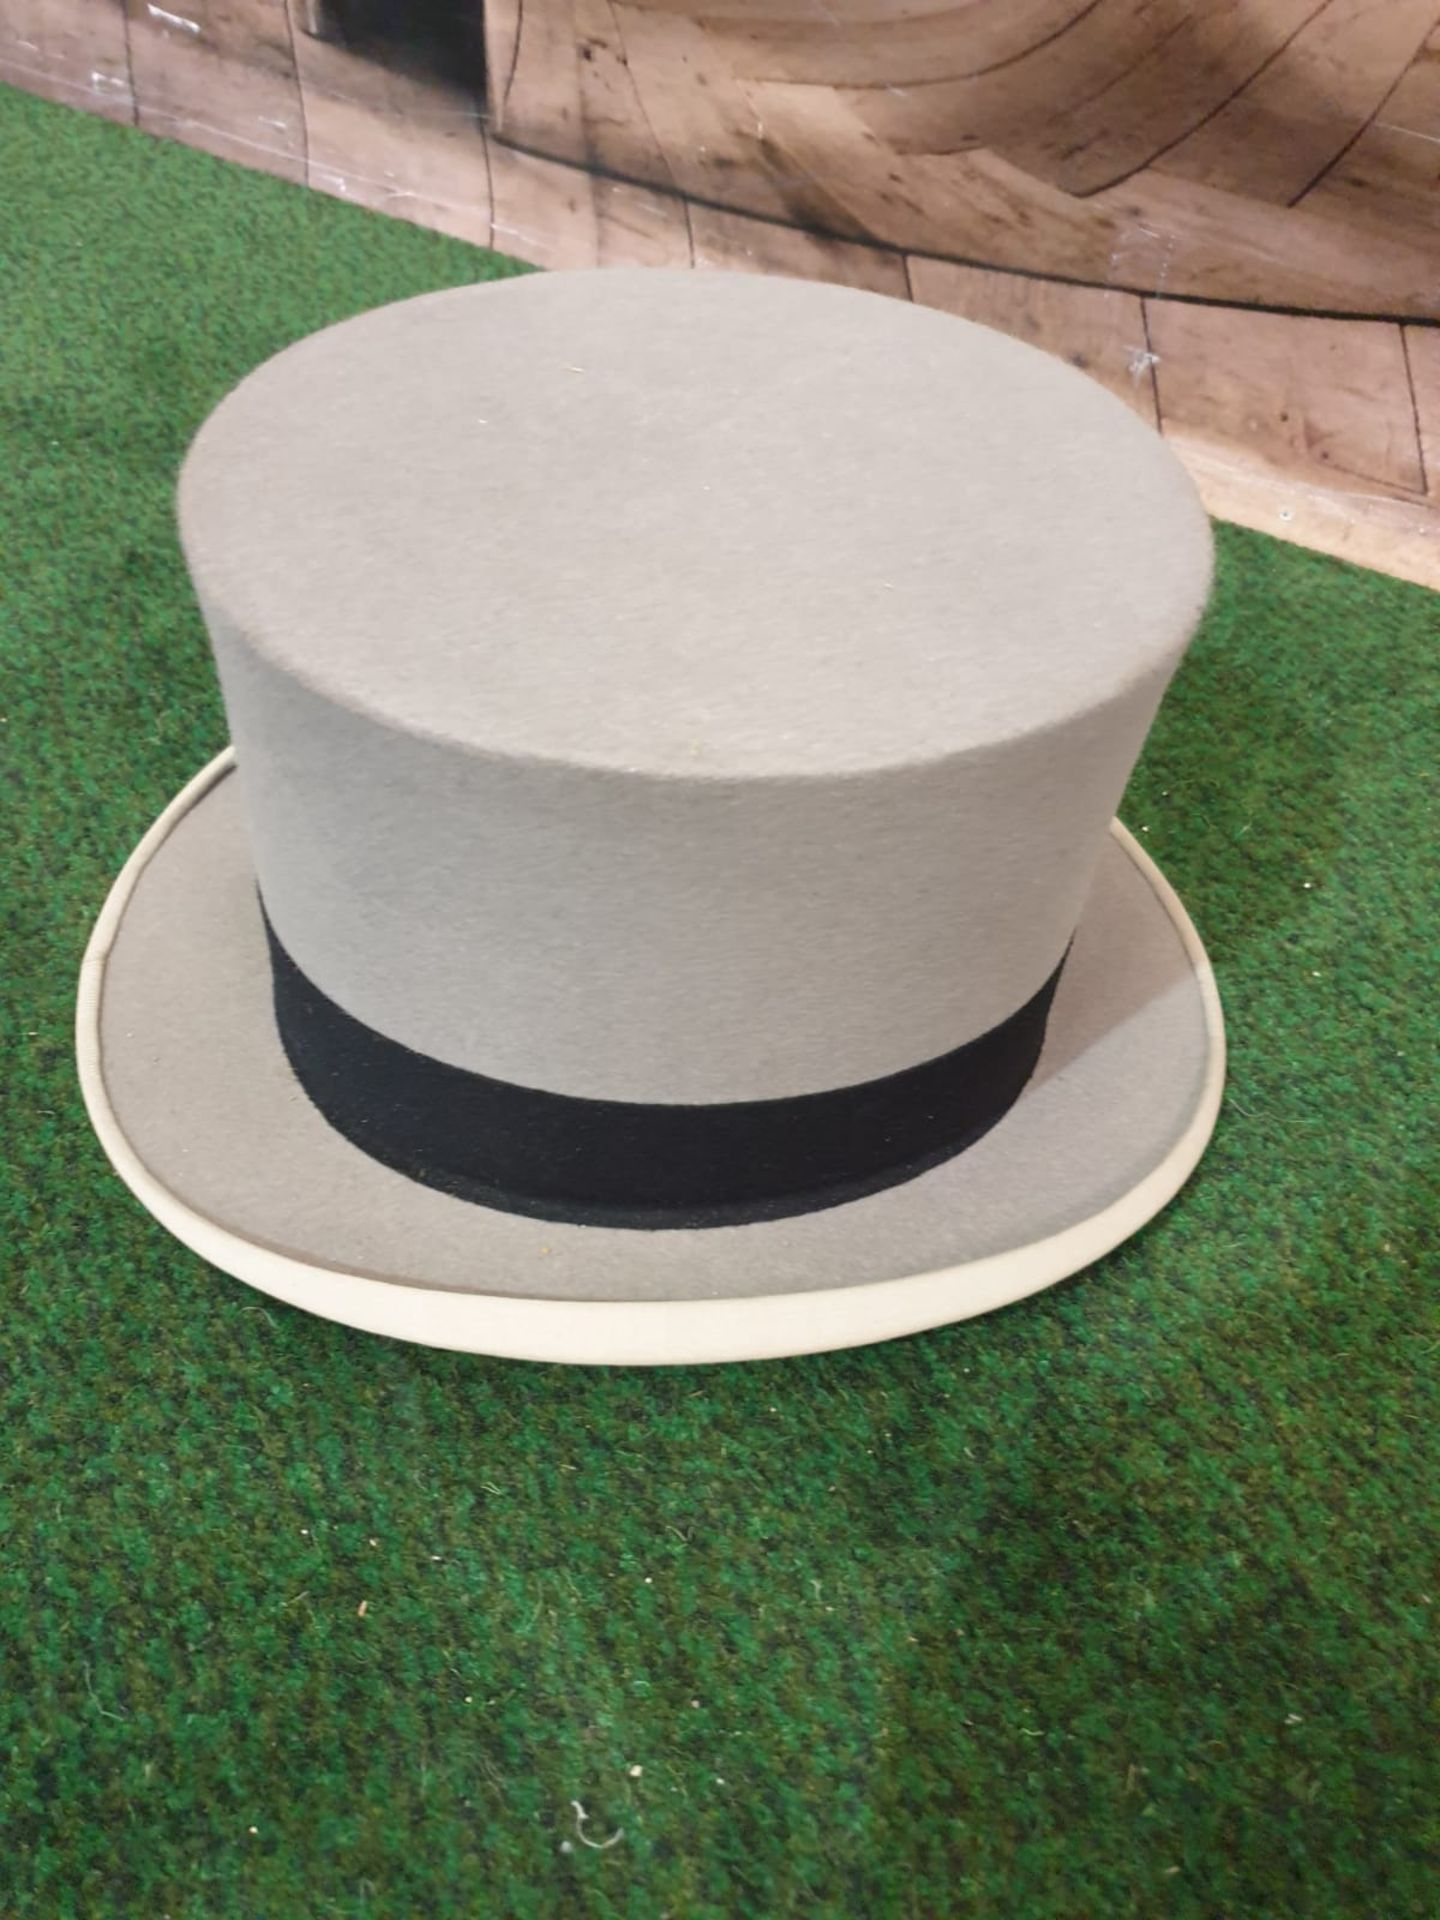 A Hillhouse and Co. of 11 New Bond Street, London, grey top hat in original hat box - Image 2 of 4